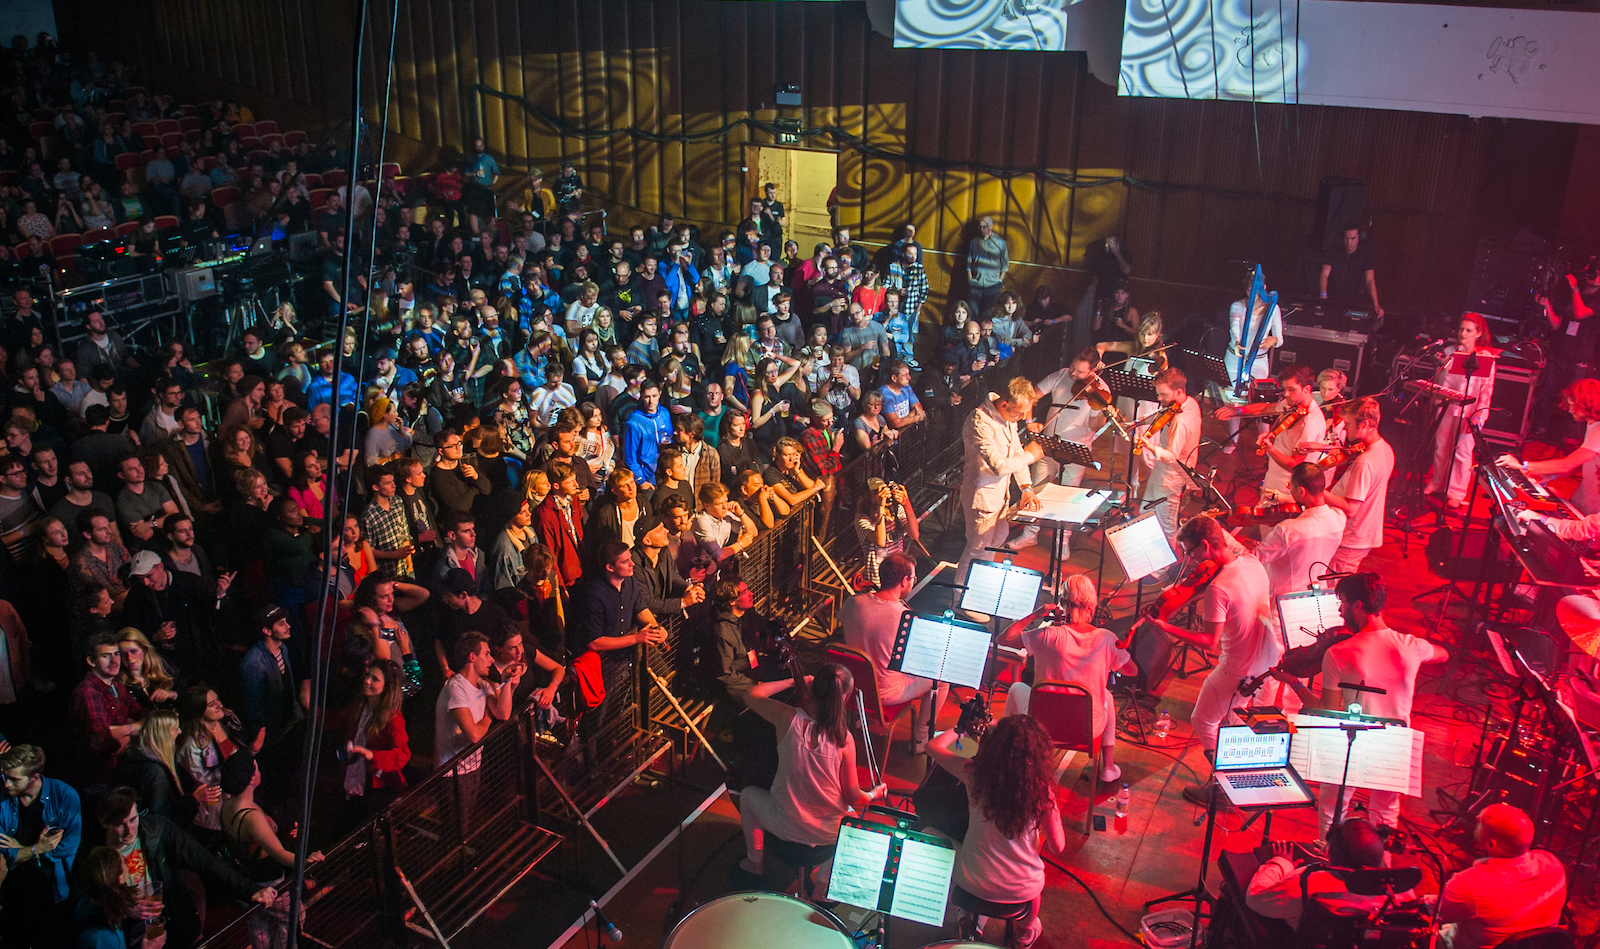 Charles Hazlewood conducts Army of Generals and The British Paraorchestra at Simple Things, Colston Hall, 21 October. Image taken behind the stage and shows orchestra, conductor and audience.